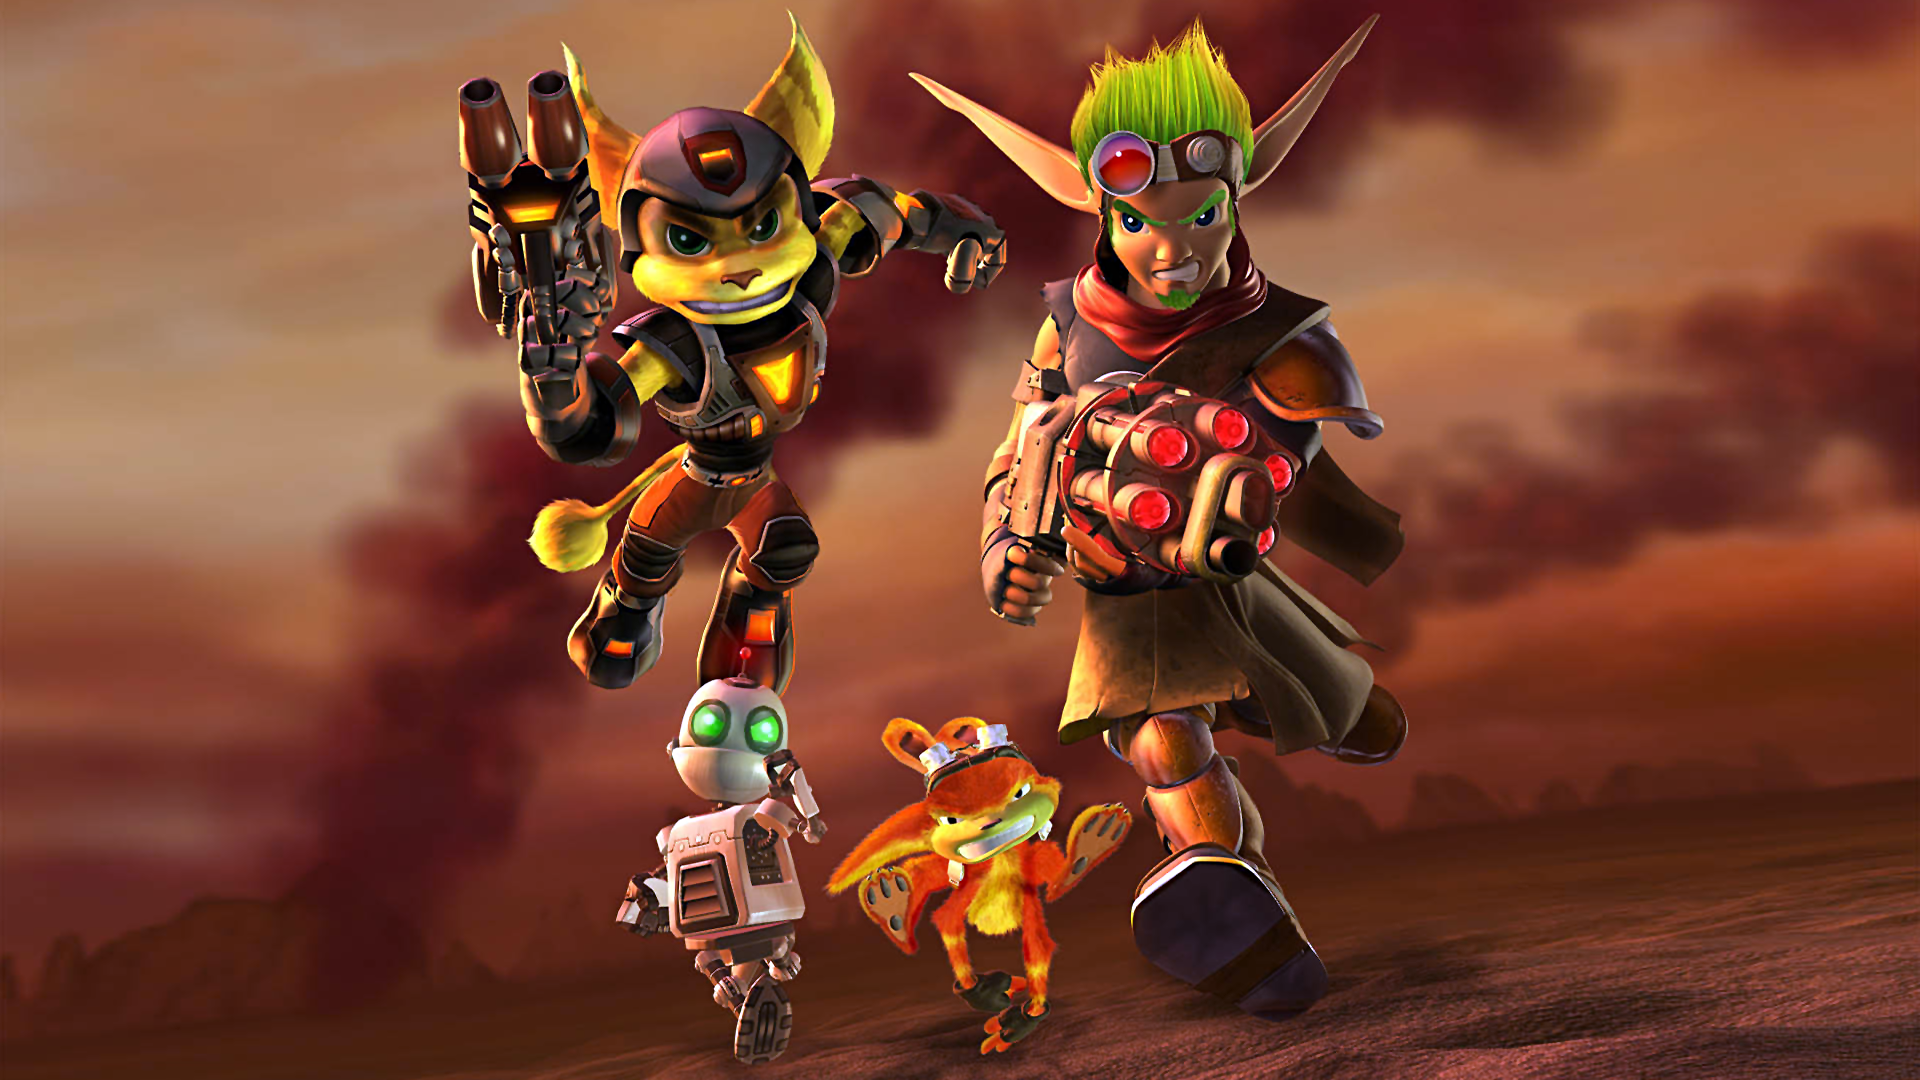 Ratchet Jak Wallpaper Ratchet And Clank Jak And Daxter